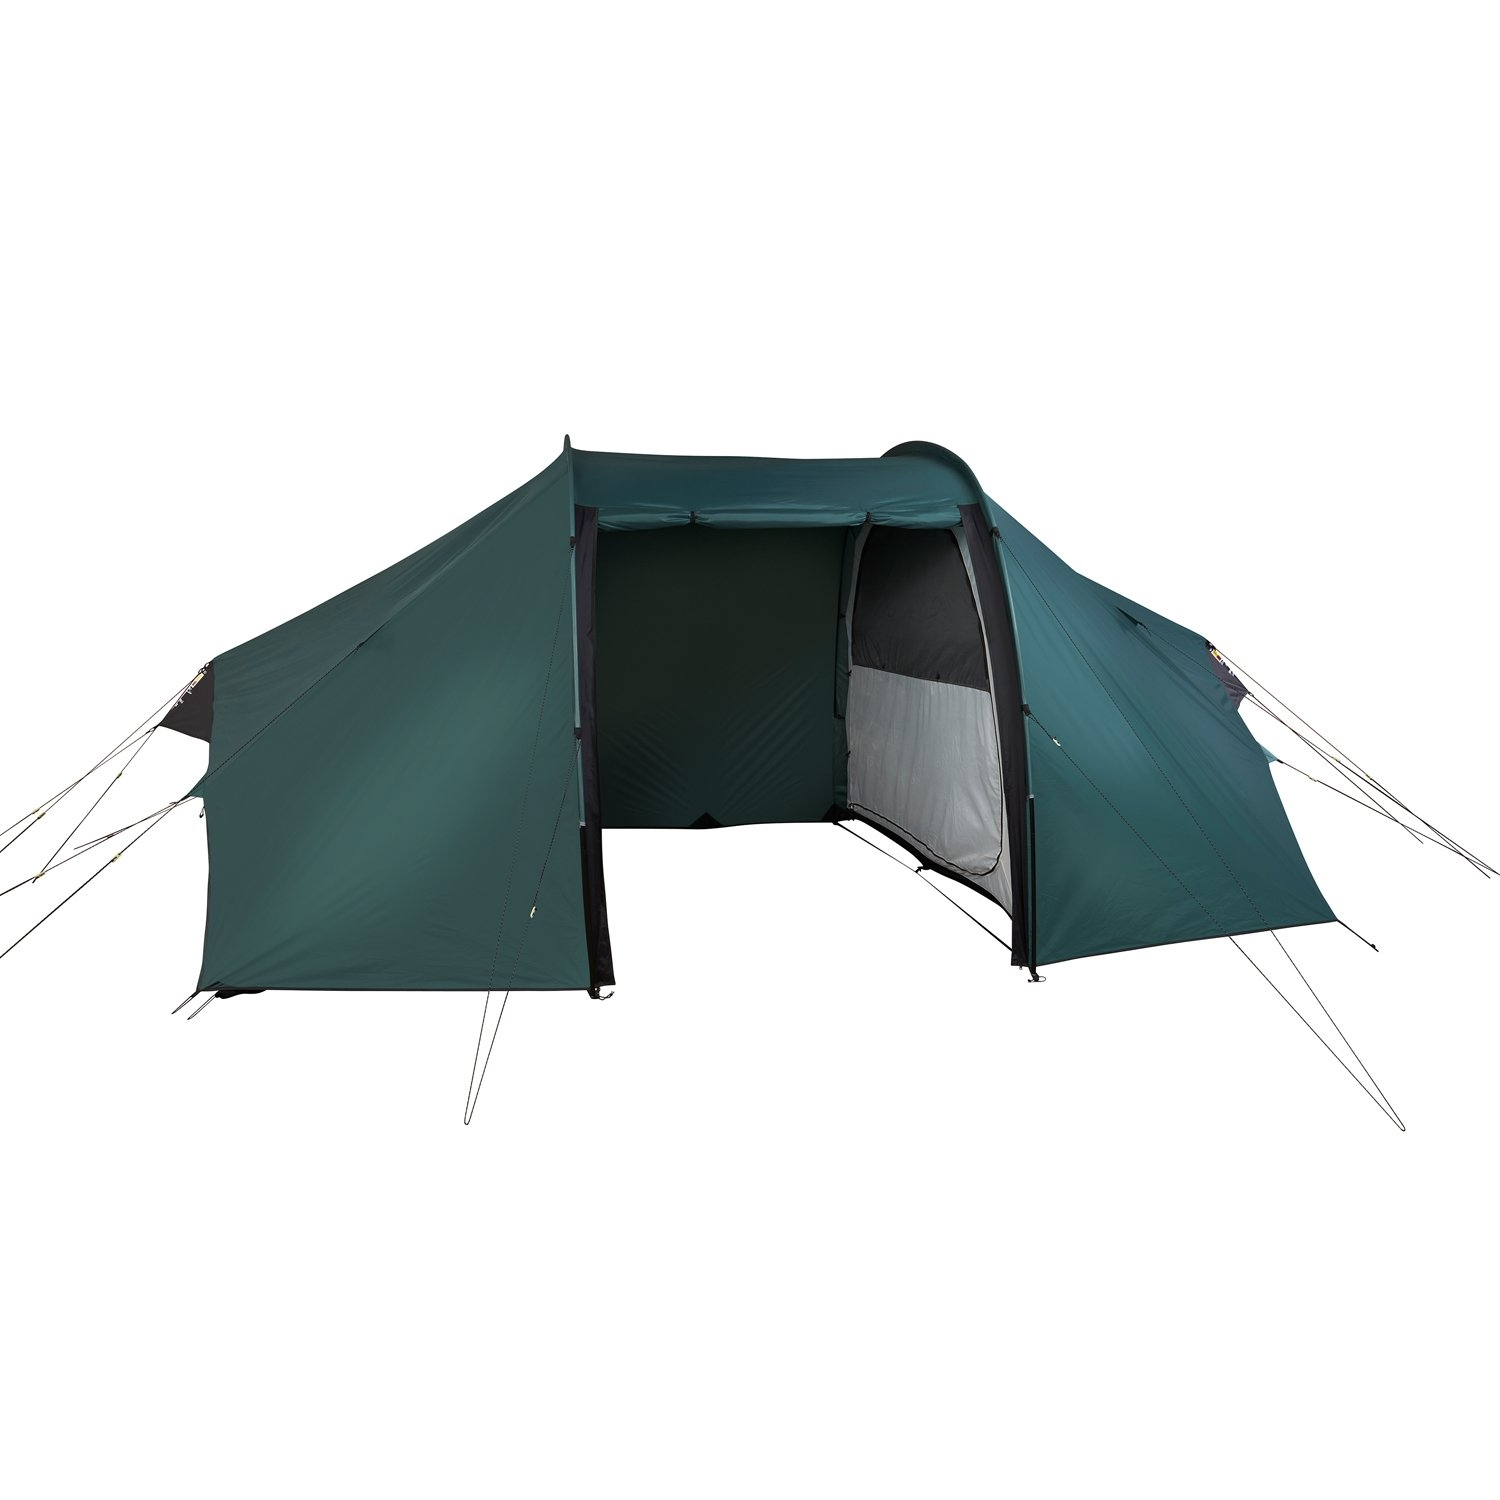 Wild Country Zephyros 4 Living Tent  sc 1 st  Uttings & Wild Country Tents   Uttings.co.uk